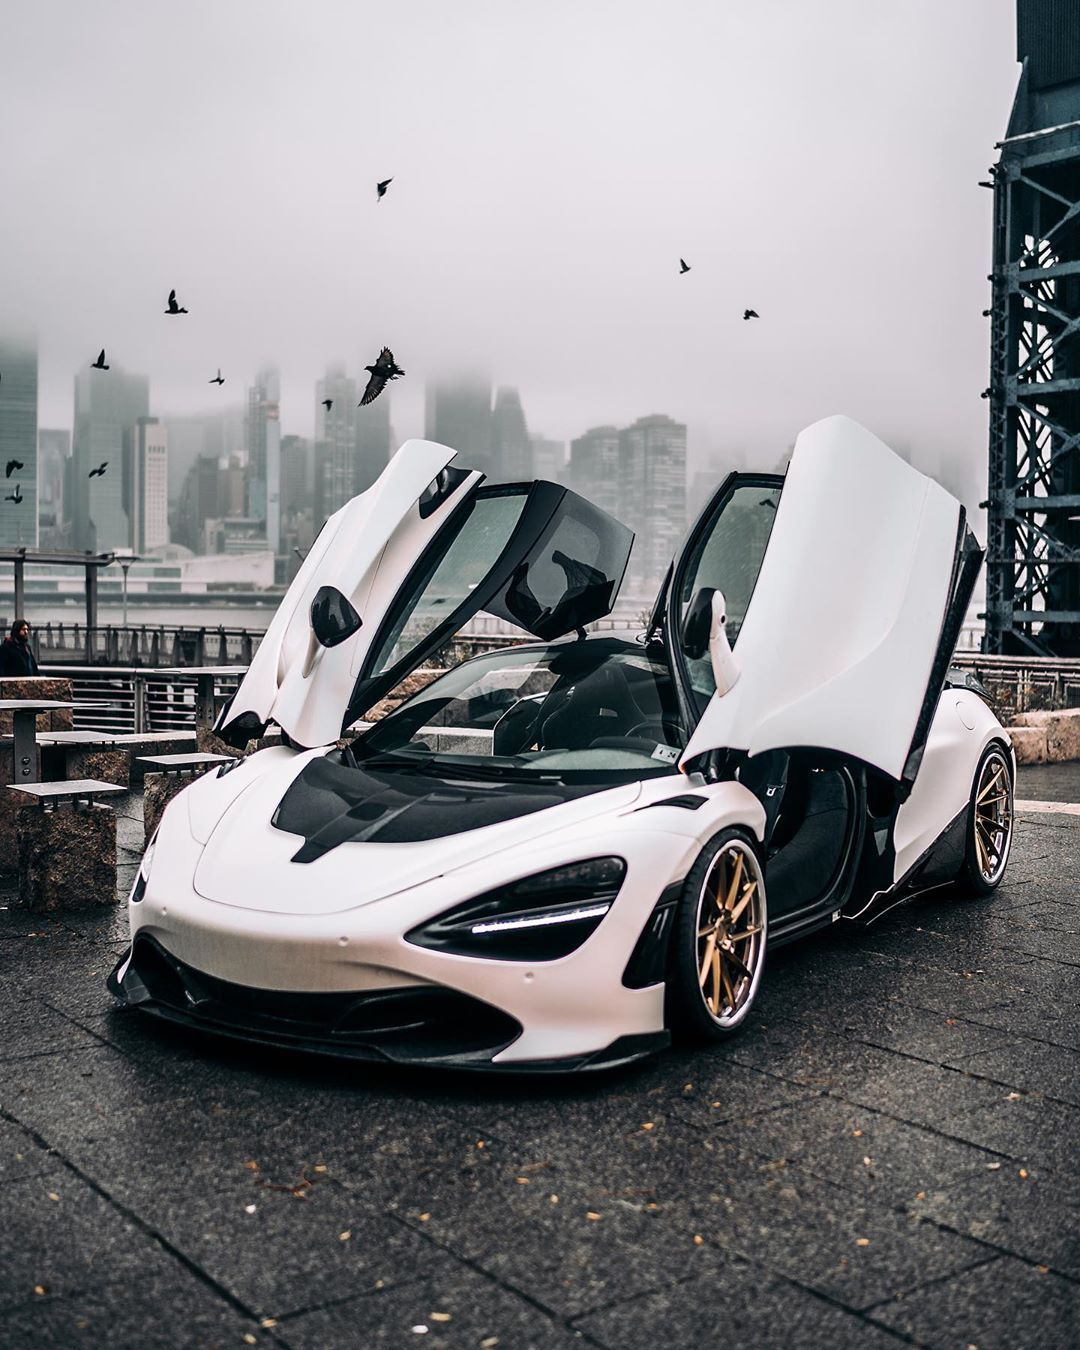 Found An Alien Spaceship In Las Vegas Decided To Bring In Back To Ny Juan Zillaa Mclaren 720s Built By Sports Cars Luxury Super Luxury Cars Cool Sports Cars